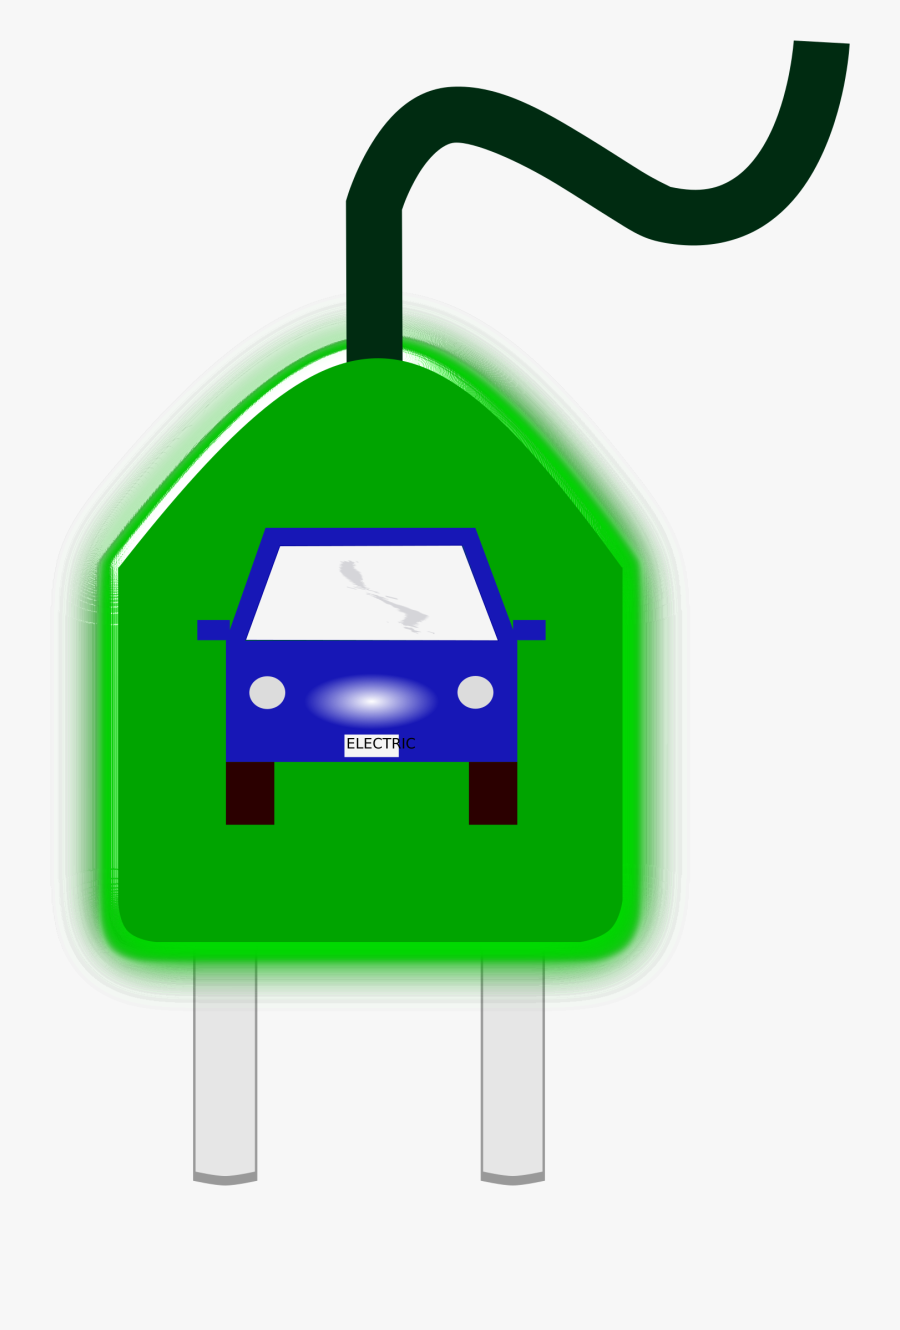 Electric Vehicle Electric Car Electricity Charging - Car Plug In Clipart, Transparent Clipart